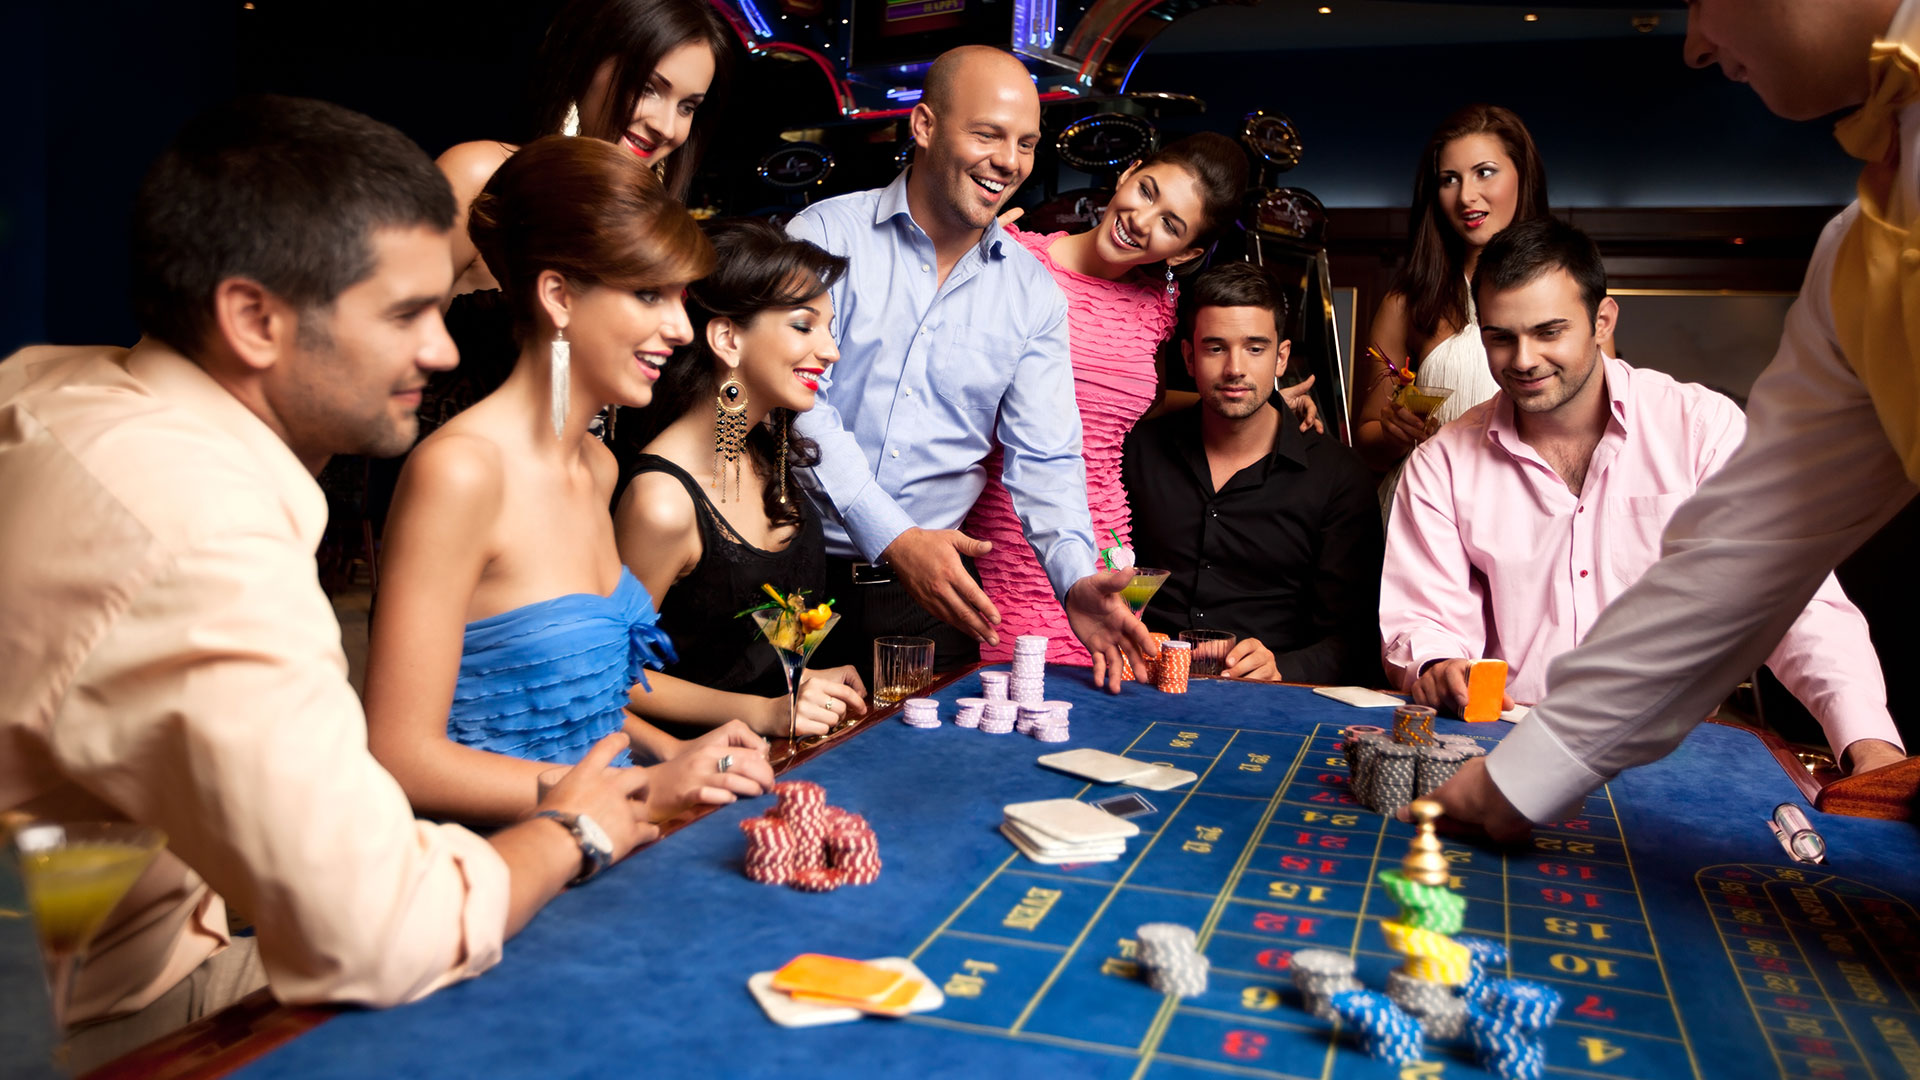 WIN BIG WITH OUR DAILY CASINO TRIPS  Copy